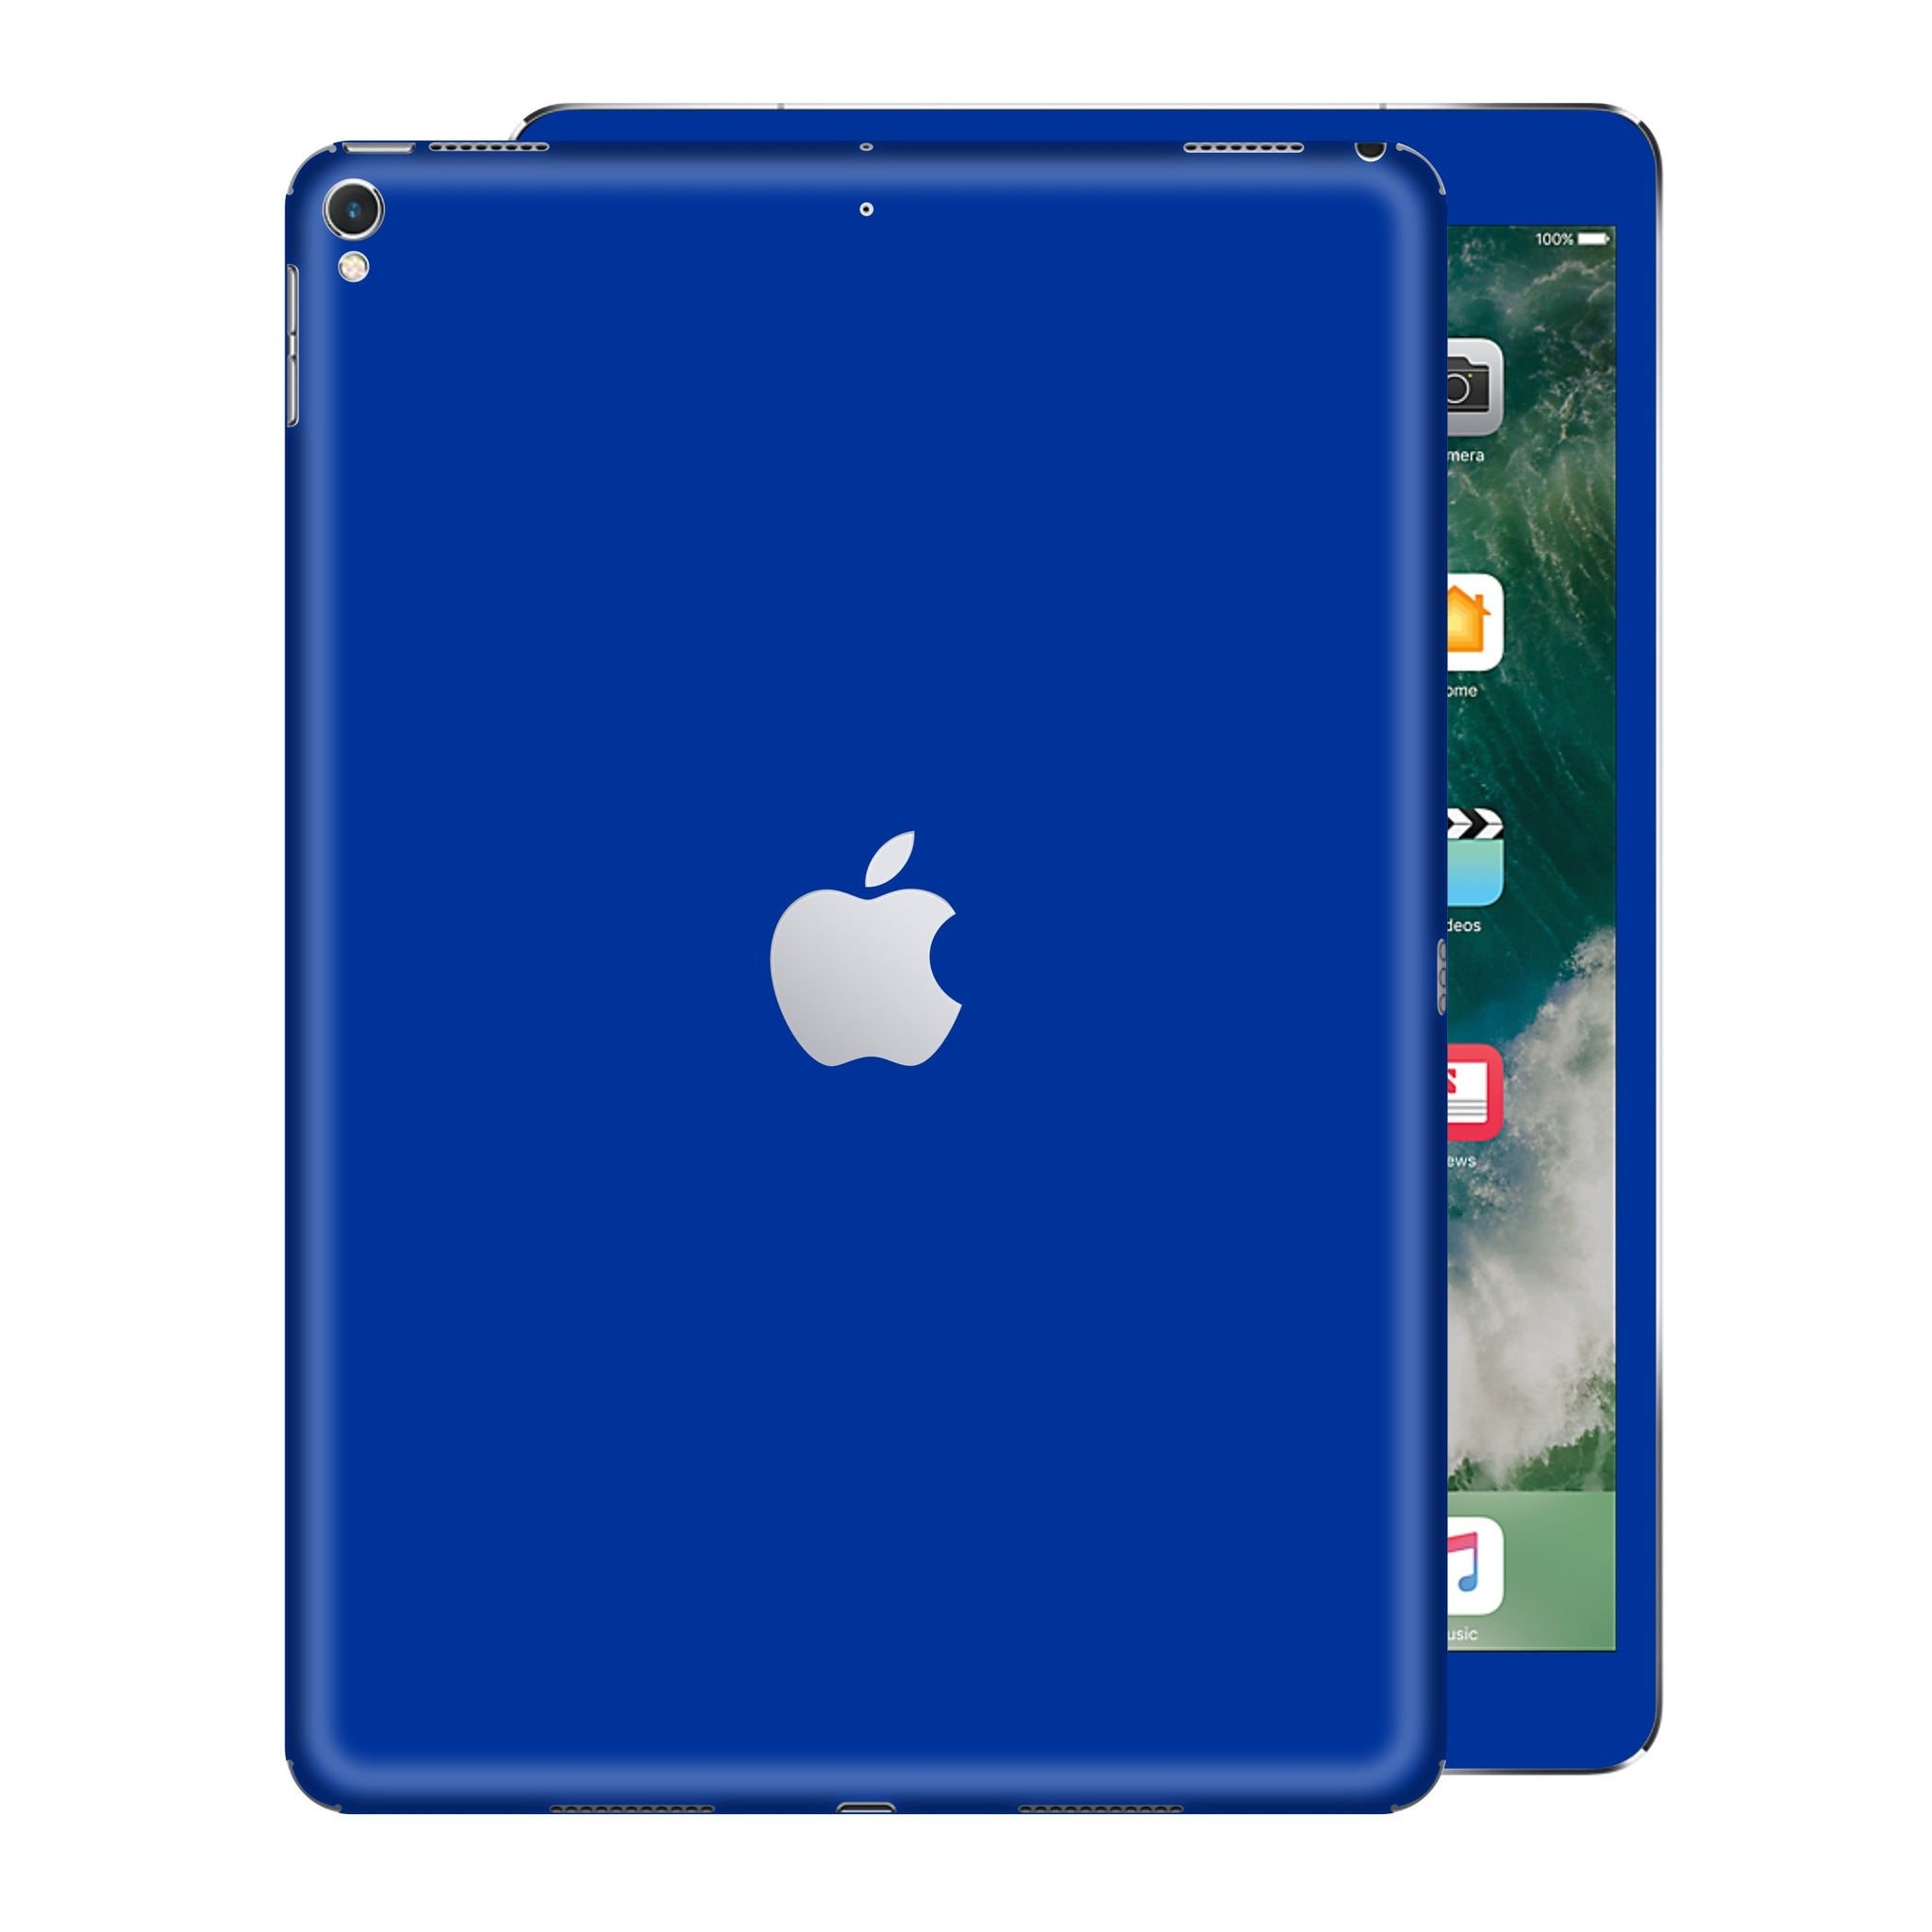 iPad PRO 10.5 inch 2017 Glossy Royal Blue Skin Wrap Sticker Decal Cover Protector by EasySkinz